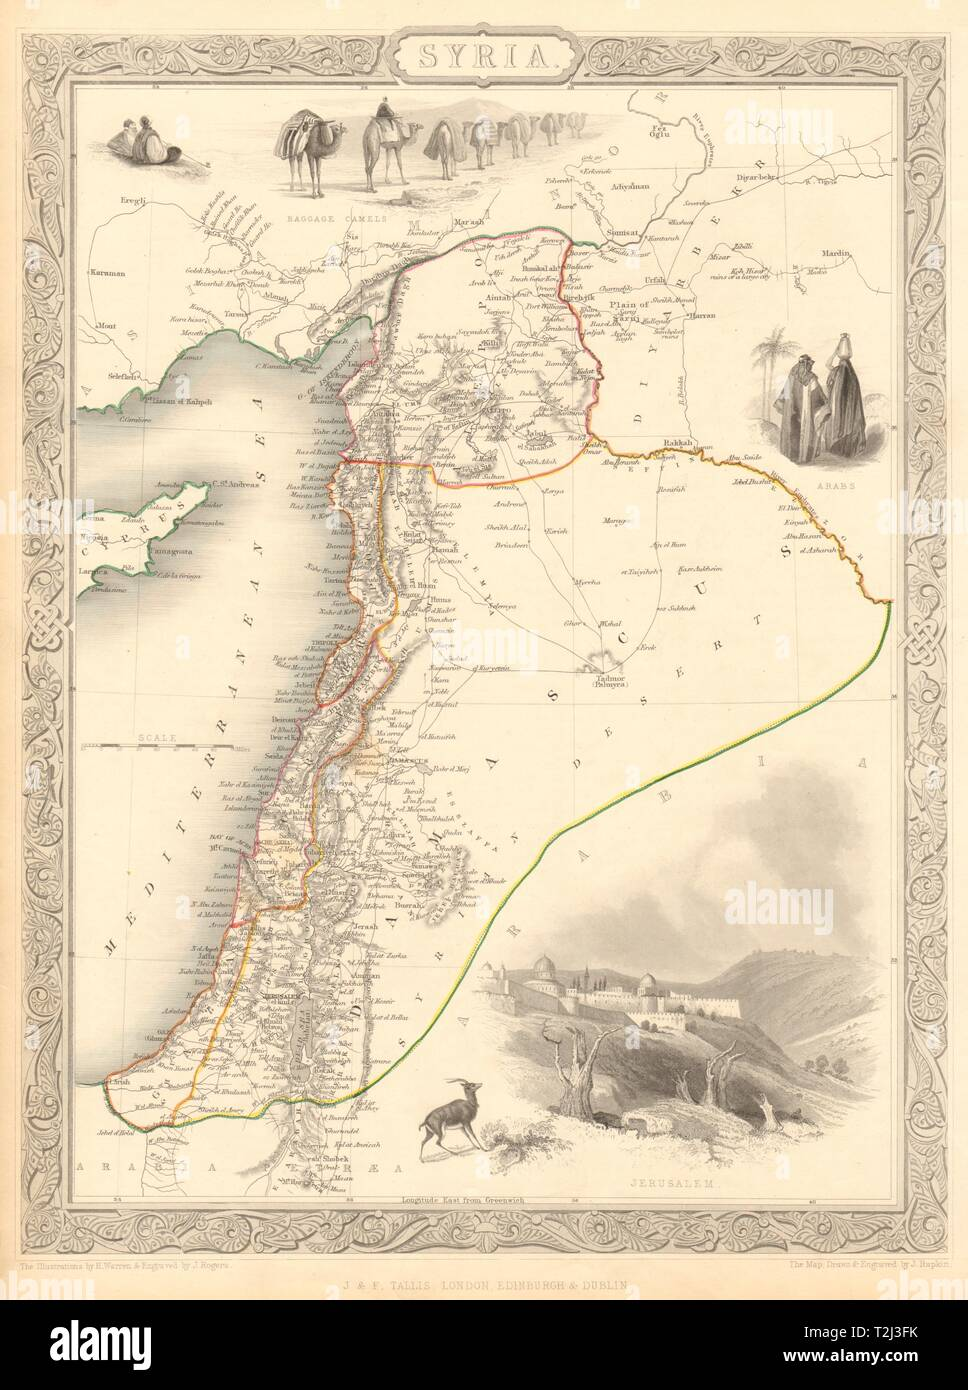 SYRIA. Levant Palestine Jordan Lebanon Israel Cyprus. TALLIS ... on mesopotamia map, israel map, syria map, mediterranean map, maghreb map, north africa map, iraq map, west bank map, ancient near east map, dead sea map, sinai peninsula map, egypt map, east asia map, ottoman empire map, palestine map, cyprus map, jordan map, fertile crescent map, canaan map, anatolia map,